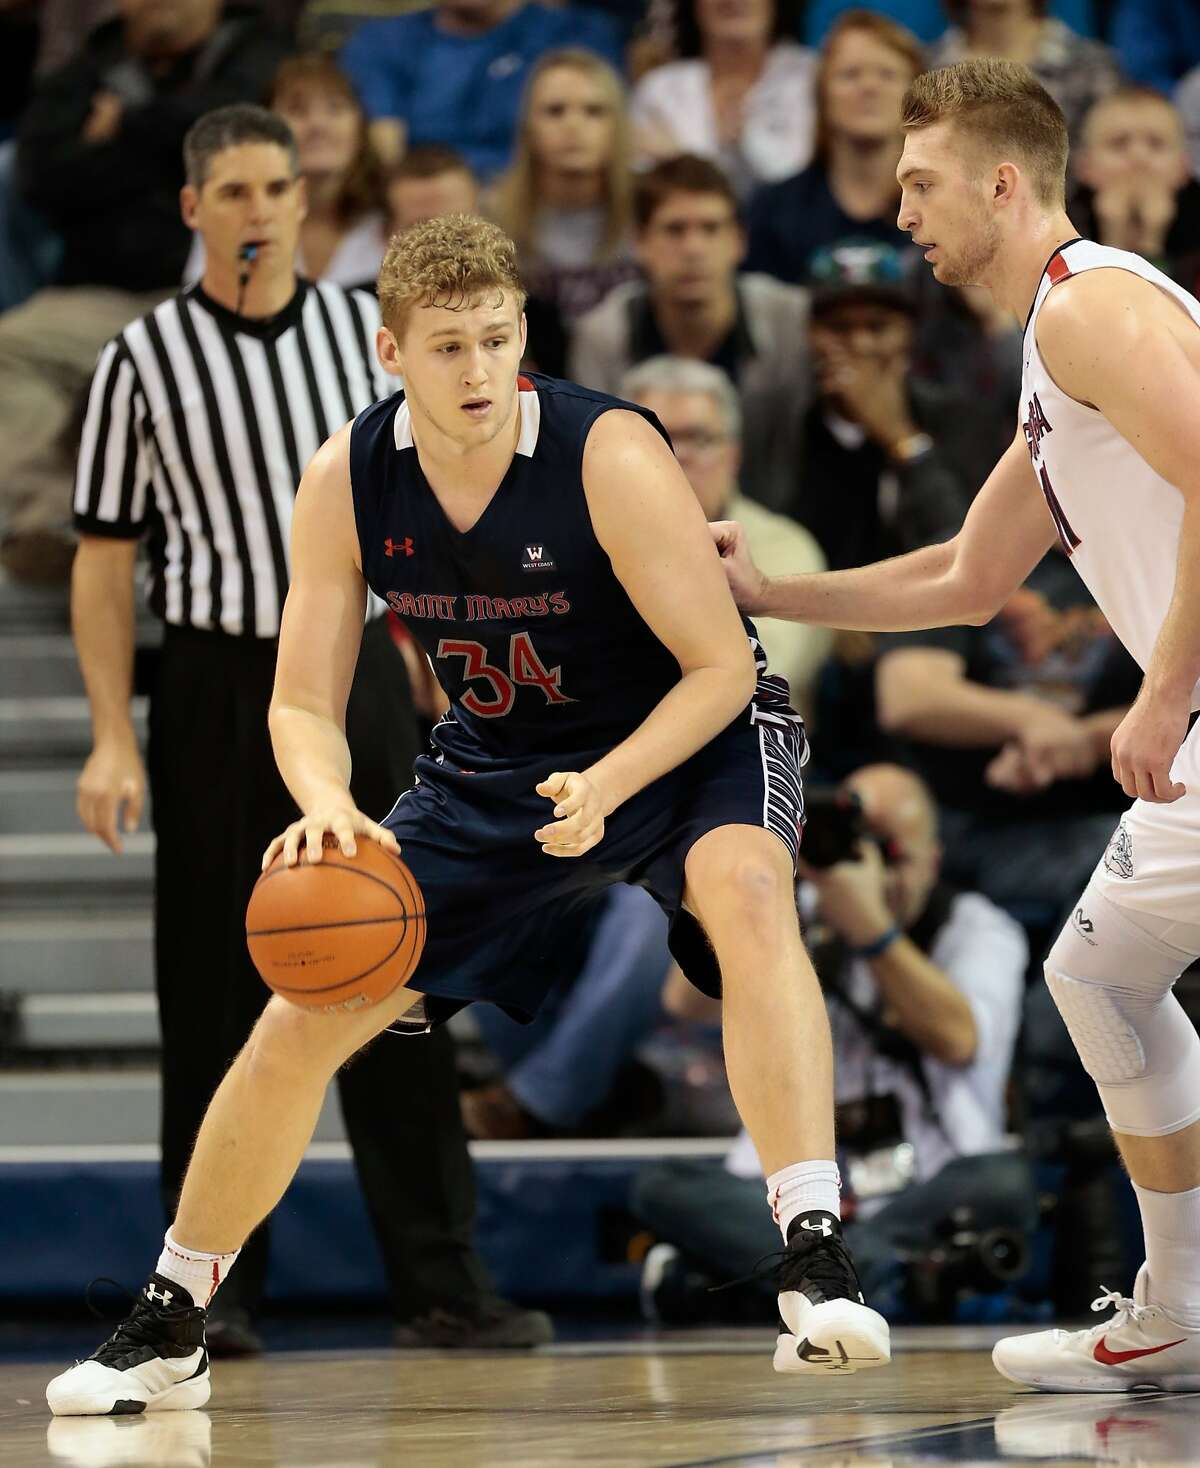 SPOKANE, WA - FEBRUARY 20: Jock Landale #34 of the Saint Mary's Gaels controls the ball against Domantas Sabonis #11 of the Gonzaga Bulldogs in the second half of the game at McCarthey Athletic Center on February 20, 2016 in Spokane, Washington. Saint Mary's defeated Gonzaga 63-58. (Photo by William Mancebo/Getty Images)